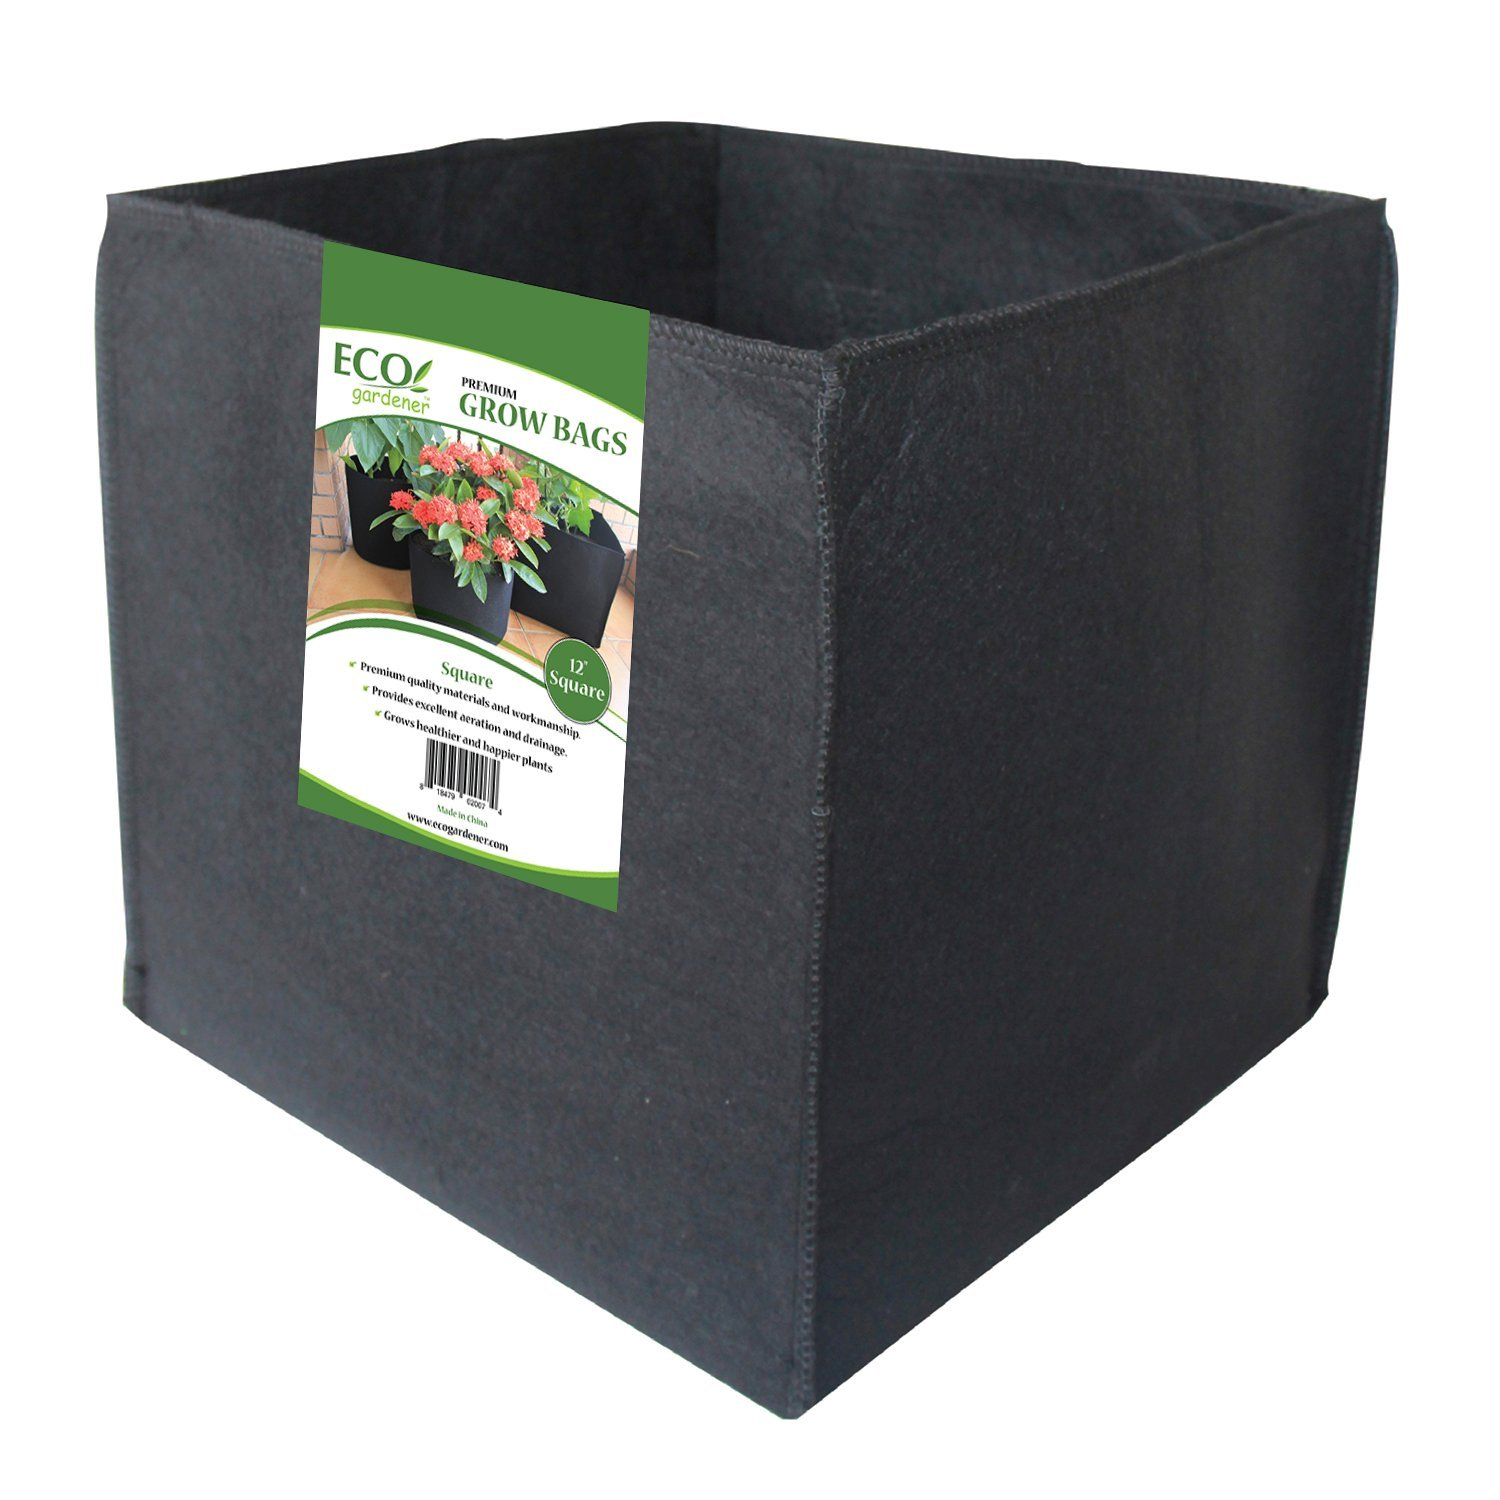 ECOgardener Grow Bags Square Foot Planter Raised Bed Fabric Pot - 12'' Square 7 Gallon 4Pk by ECOgardener